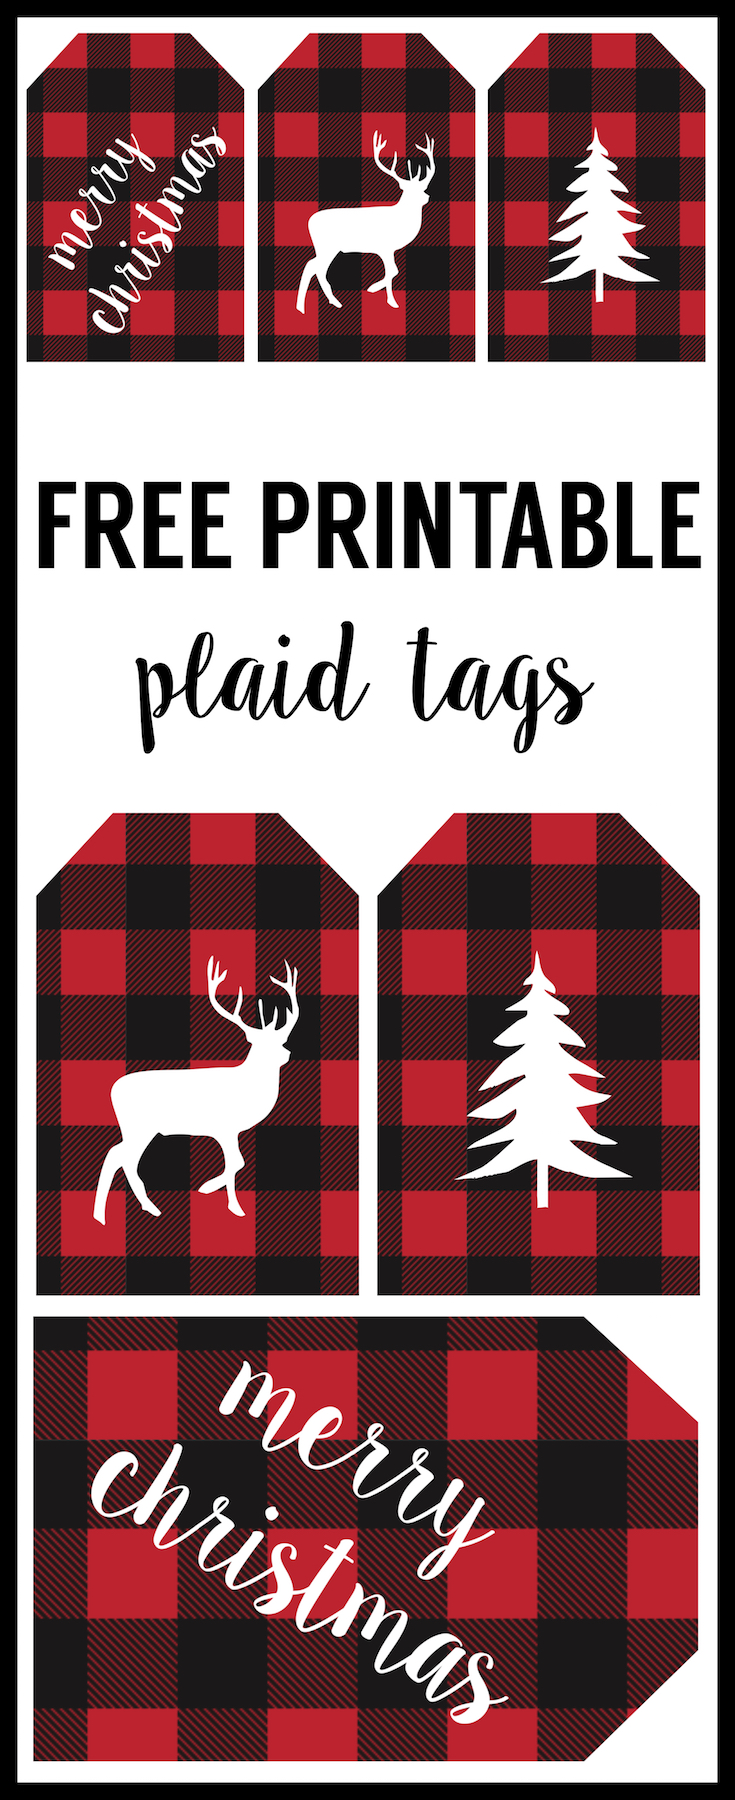 Rustic Christmas Tags Free Printable. Buffalo plaid Christmas tags to print for free. Add these free printable rustic tags to make your gift wrap look super cute!